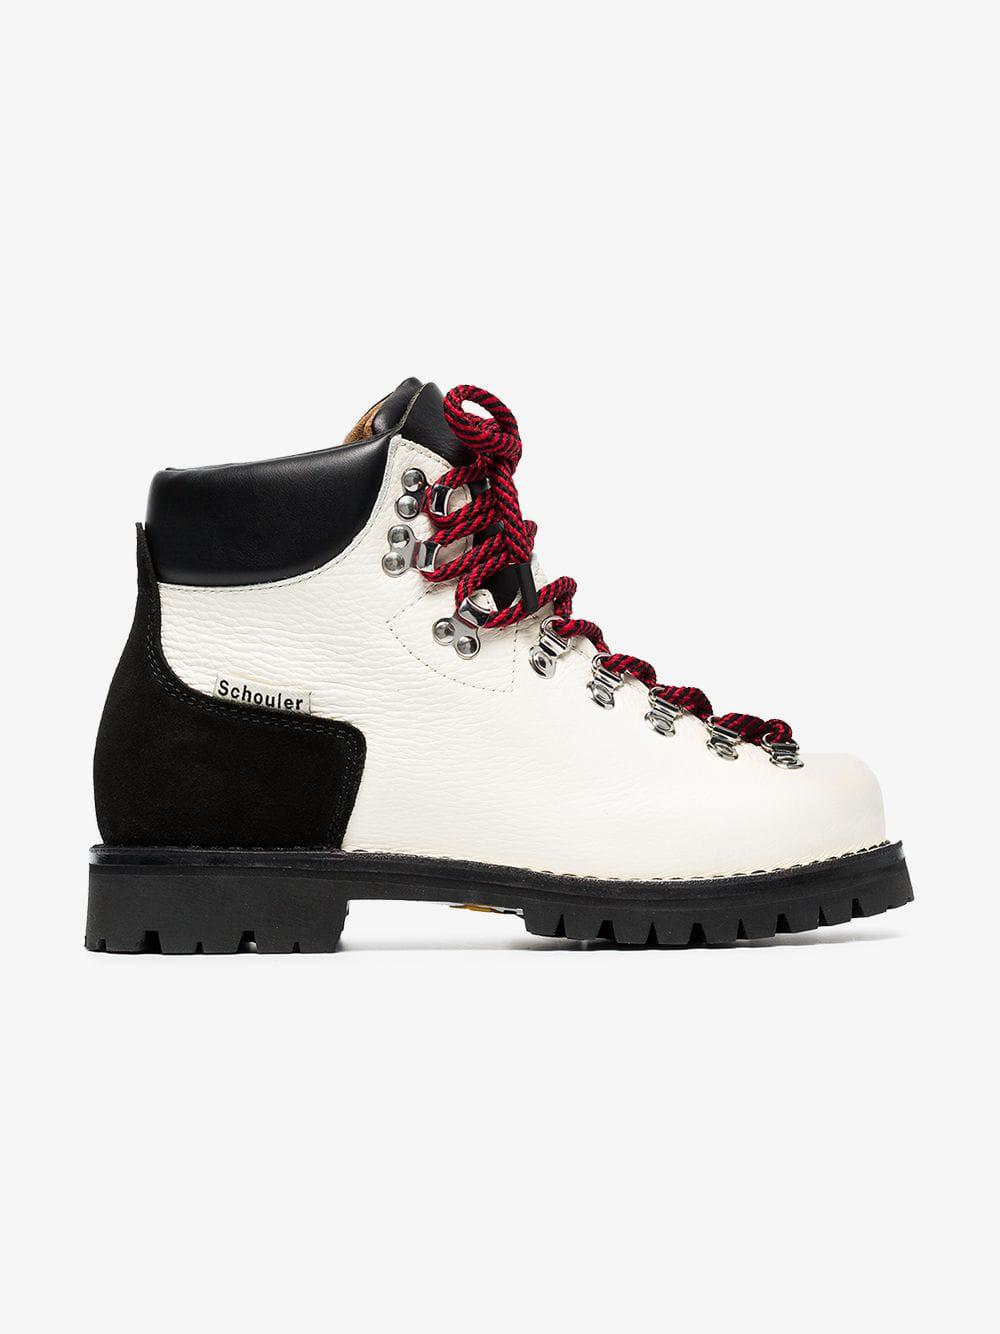 85ddc80a150 Proenza Schouler Chunky Hiking Boots in White - Lyst